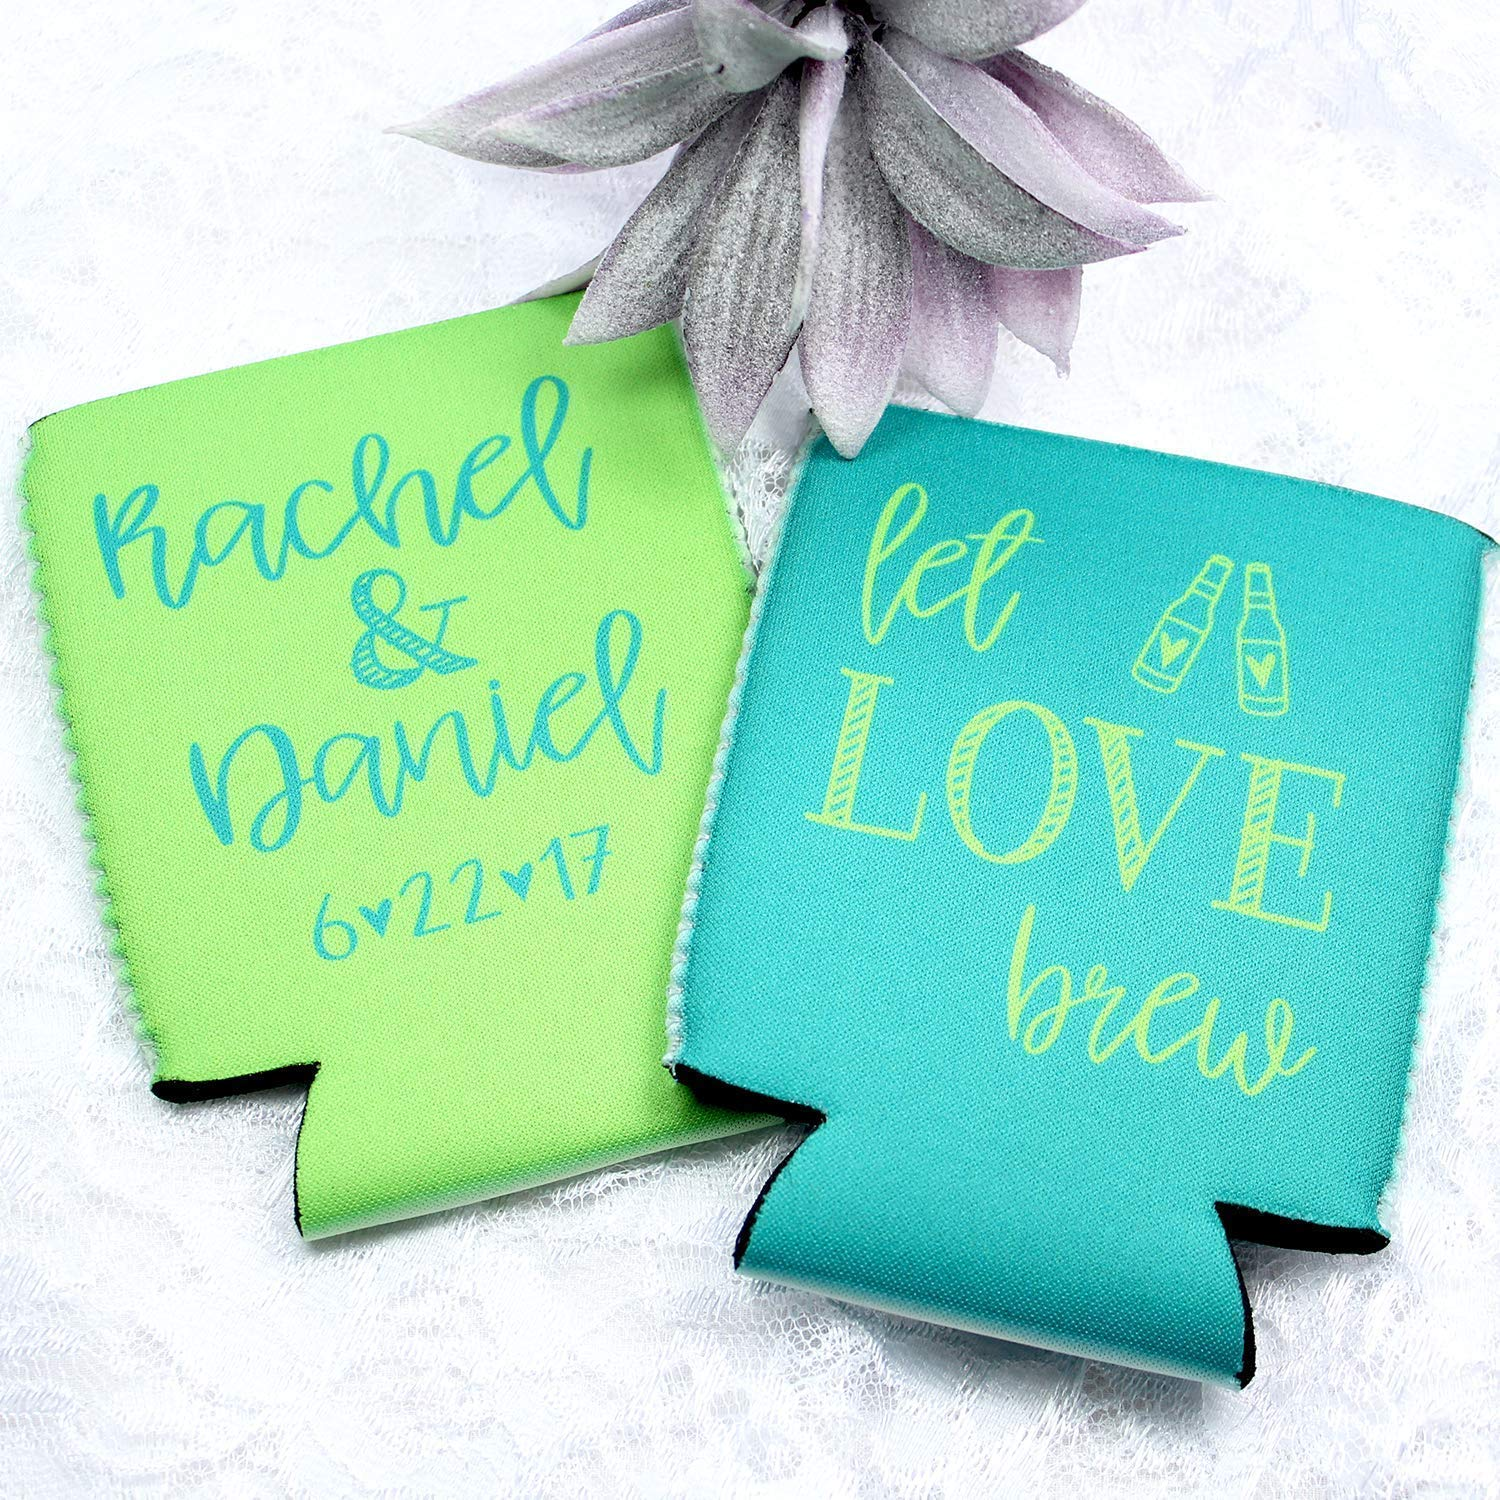 Personalized Wedding Can Coolers Let Love Brew Multiple Colors/Quantities  Available Personalized Wedding Favors Neoprene Can Coolers